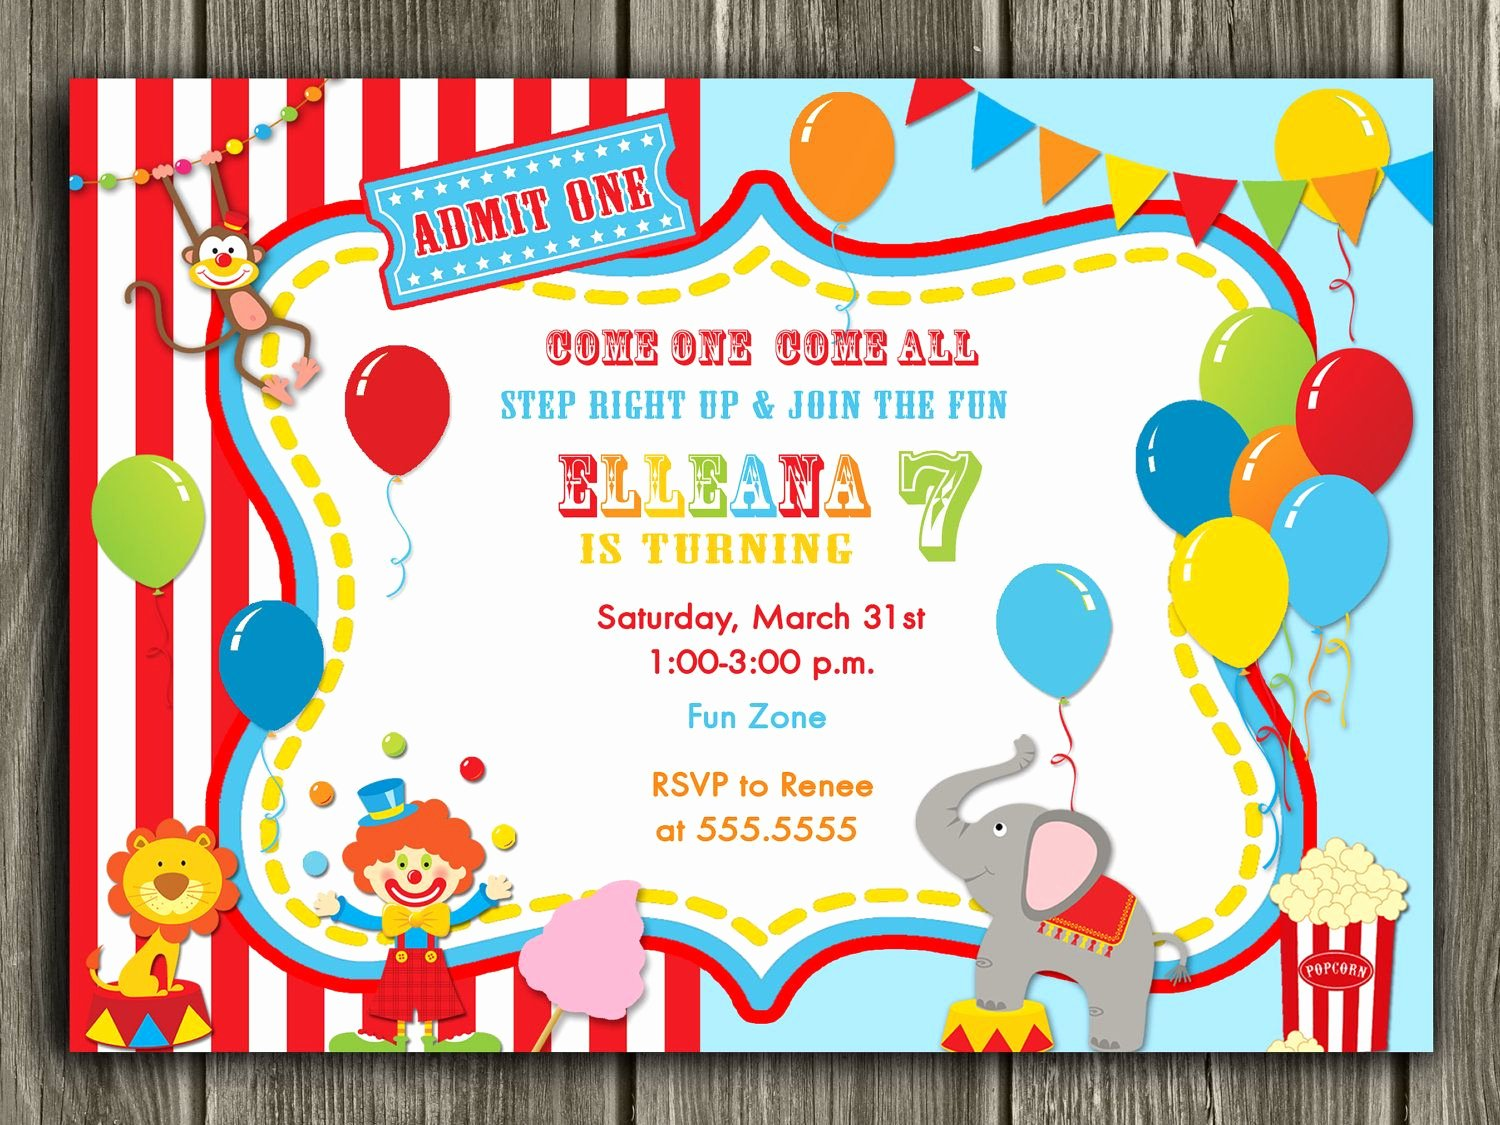 Free Printable Carnival Invitations Elegant Circus Invitation Free Thank You Card Included $15 00 Via Etsy